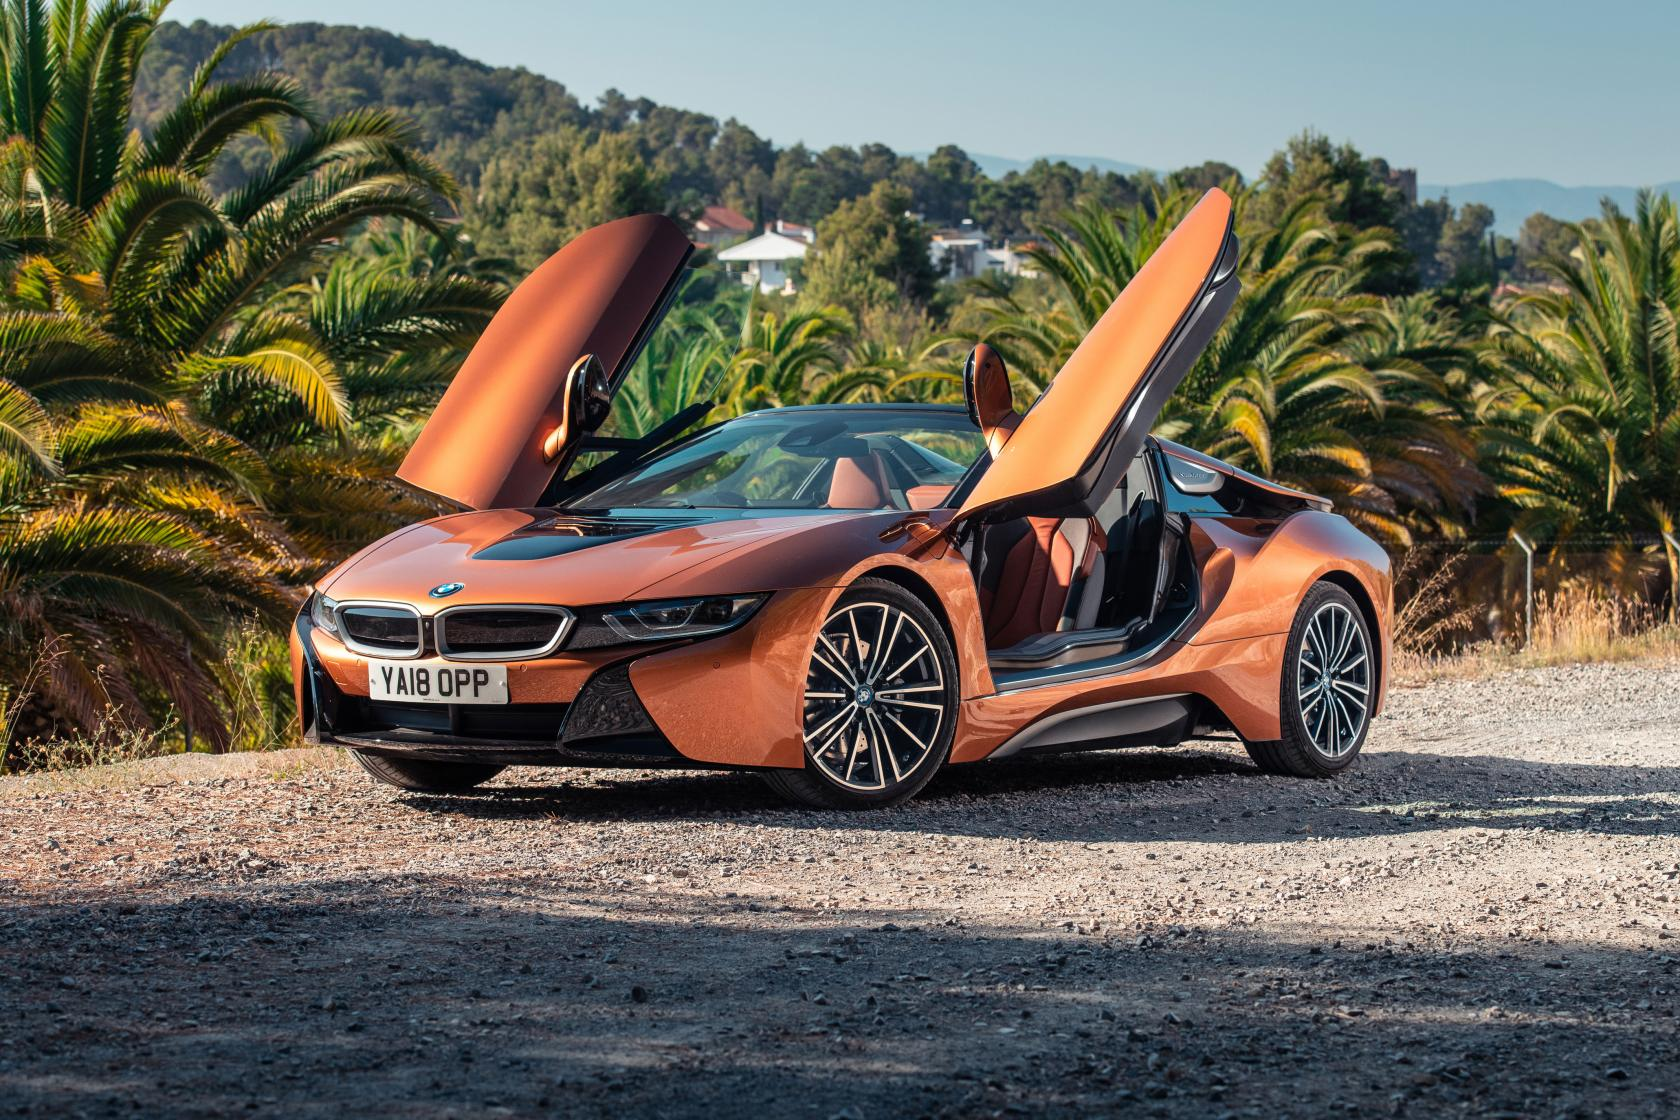 BMW i8 Roadster review and test drive 2018 | Wallpaper*